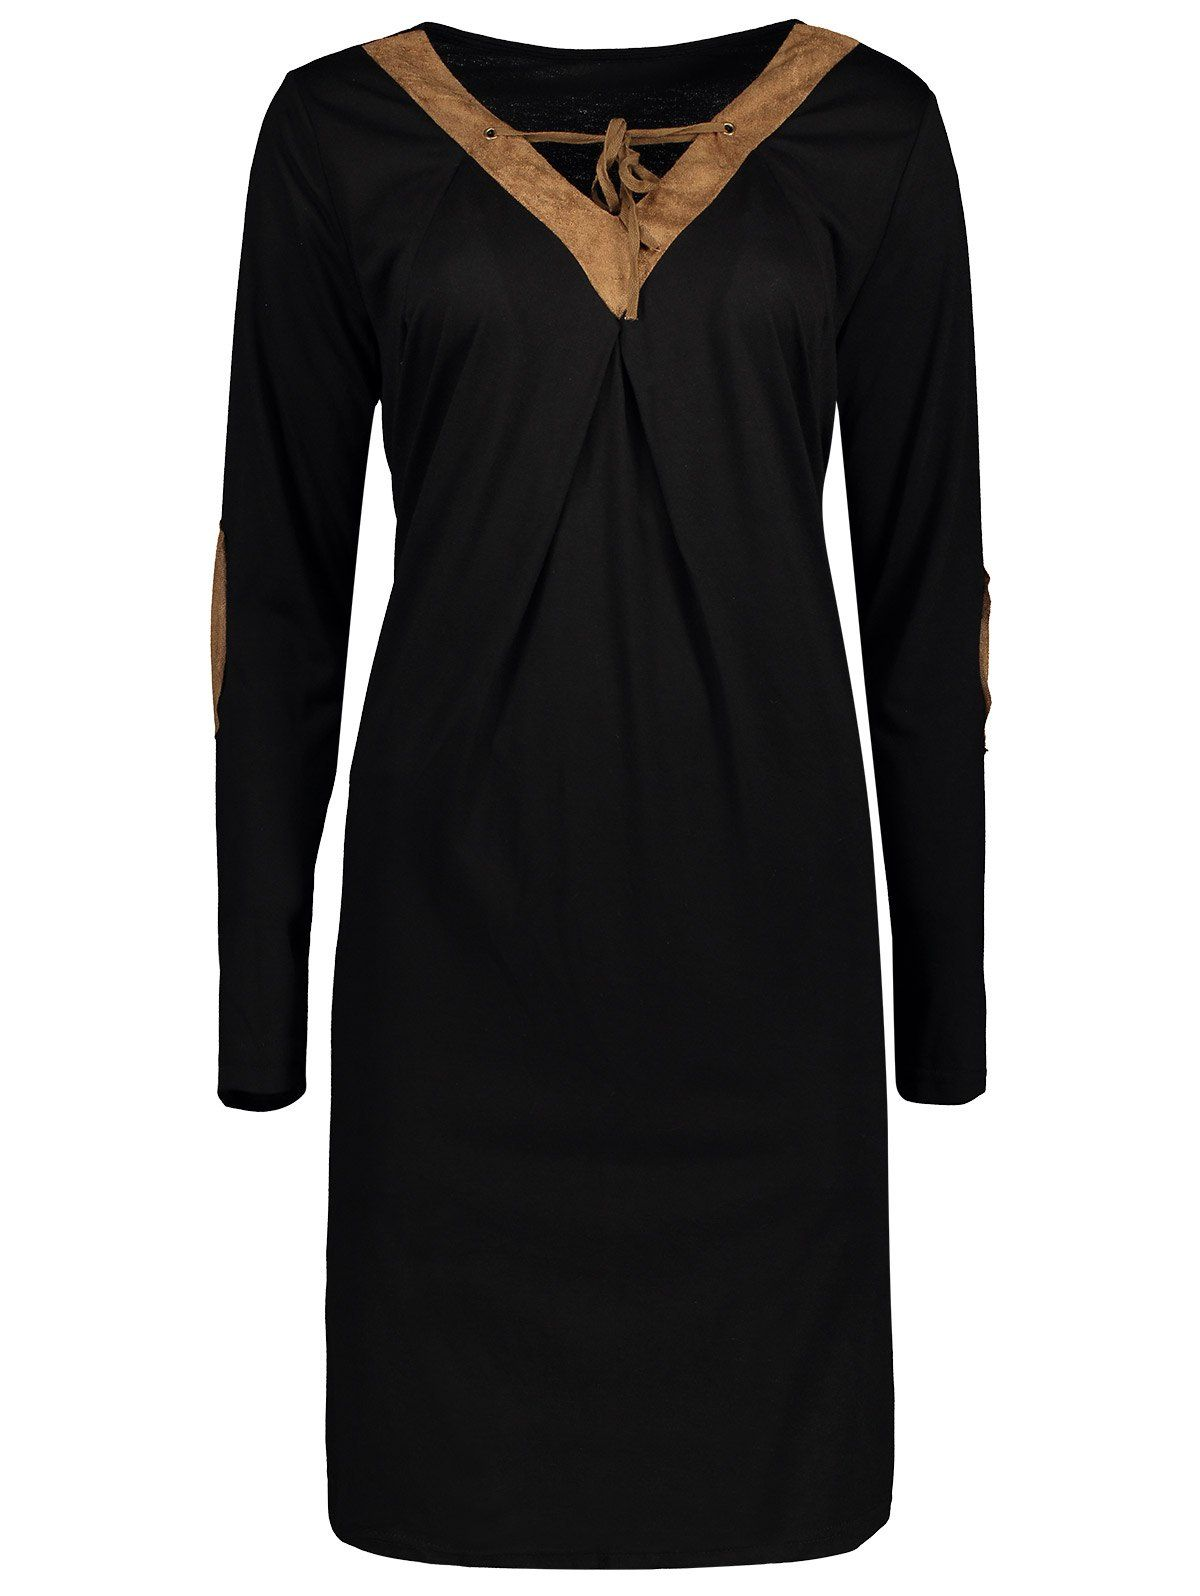 V neck elbow patch long sleeve tshirt dress men hats watches